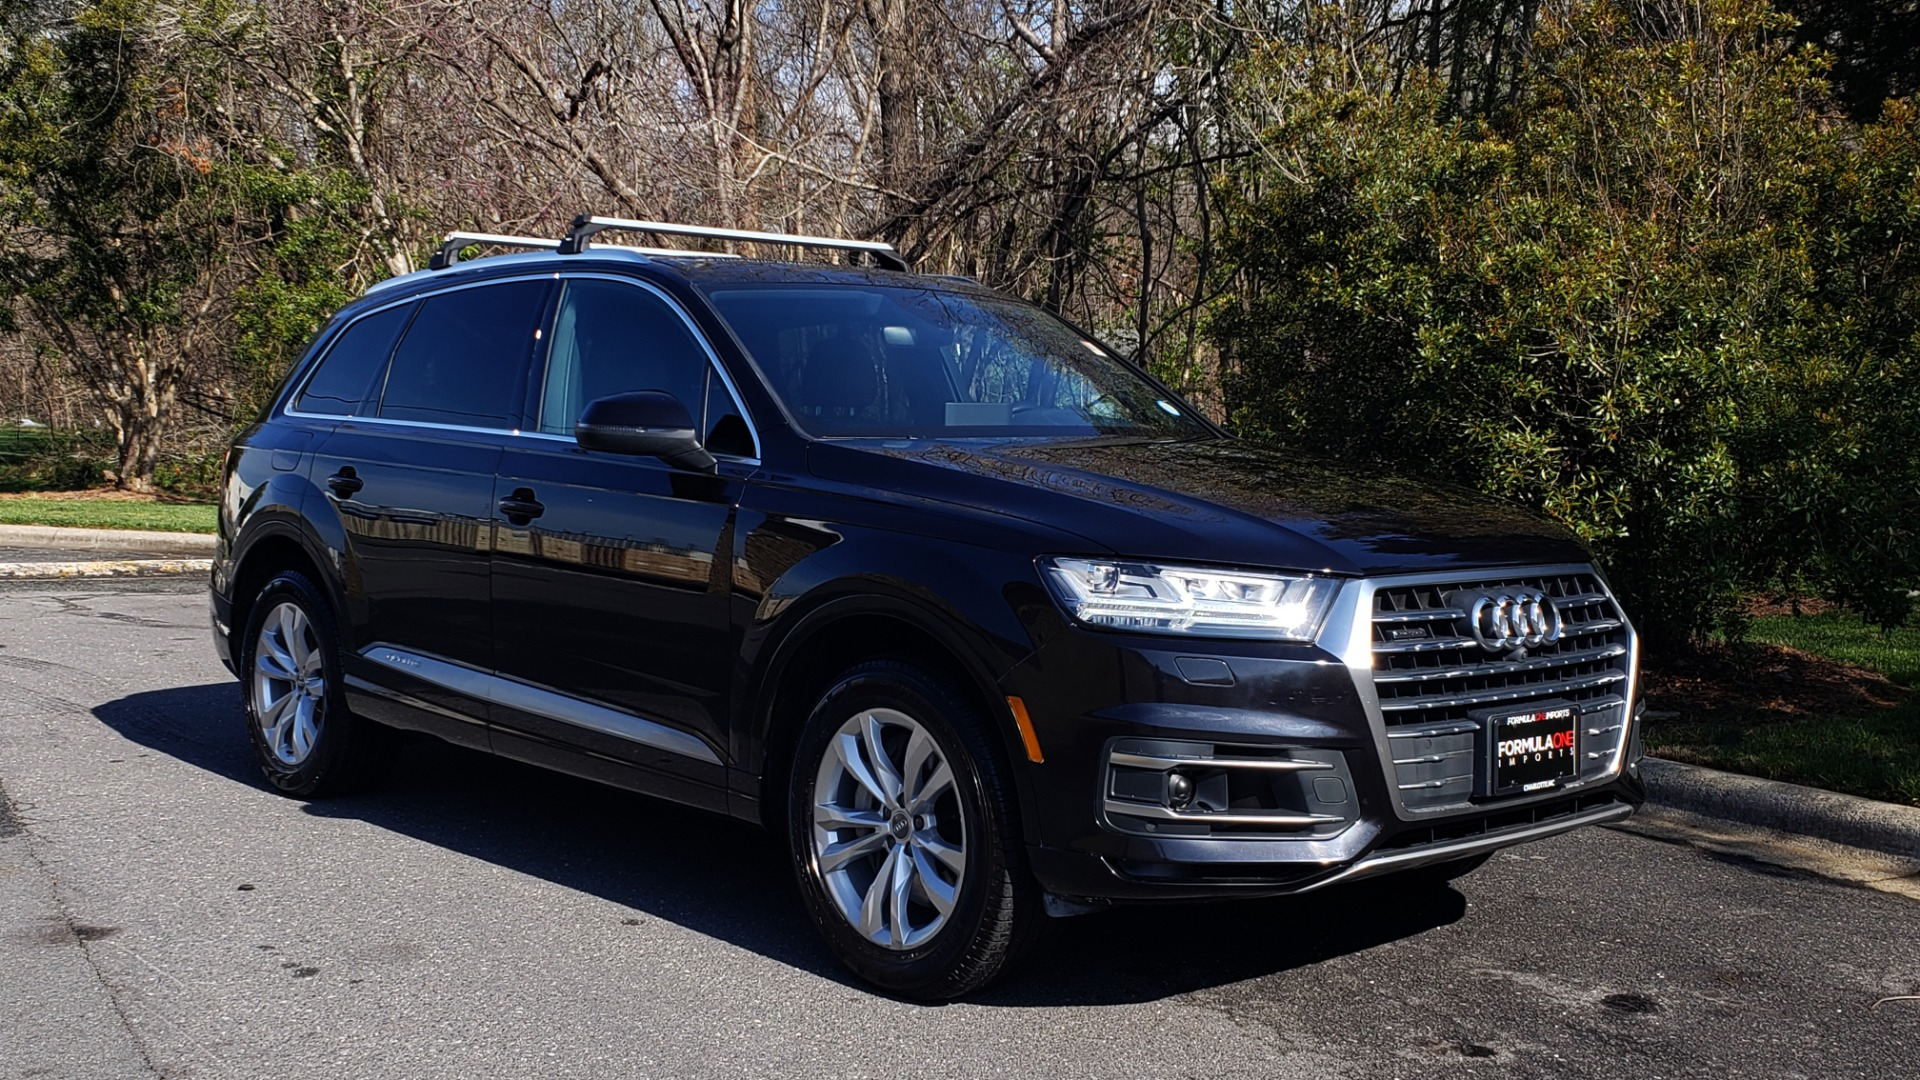 Used 2017 Audi Q7 PREMIUM PLUS 3.0T / NAV / DRVR ASST / NAV / SUNROOF / BOSE / CLD WTHR for sale Sold at Formula Imports in Charlotte NC 28227 3